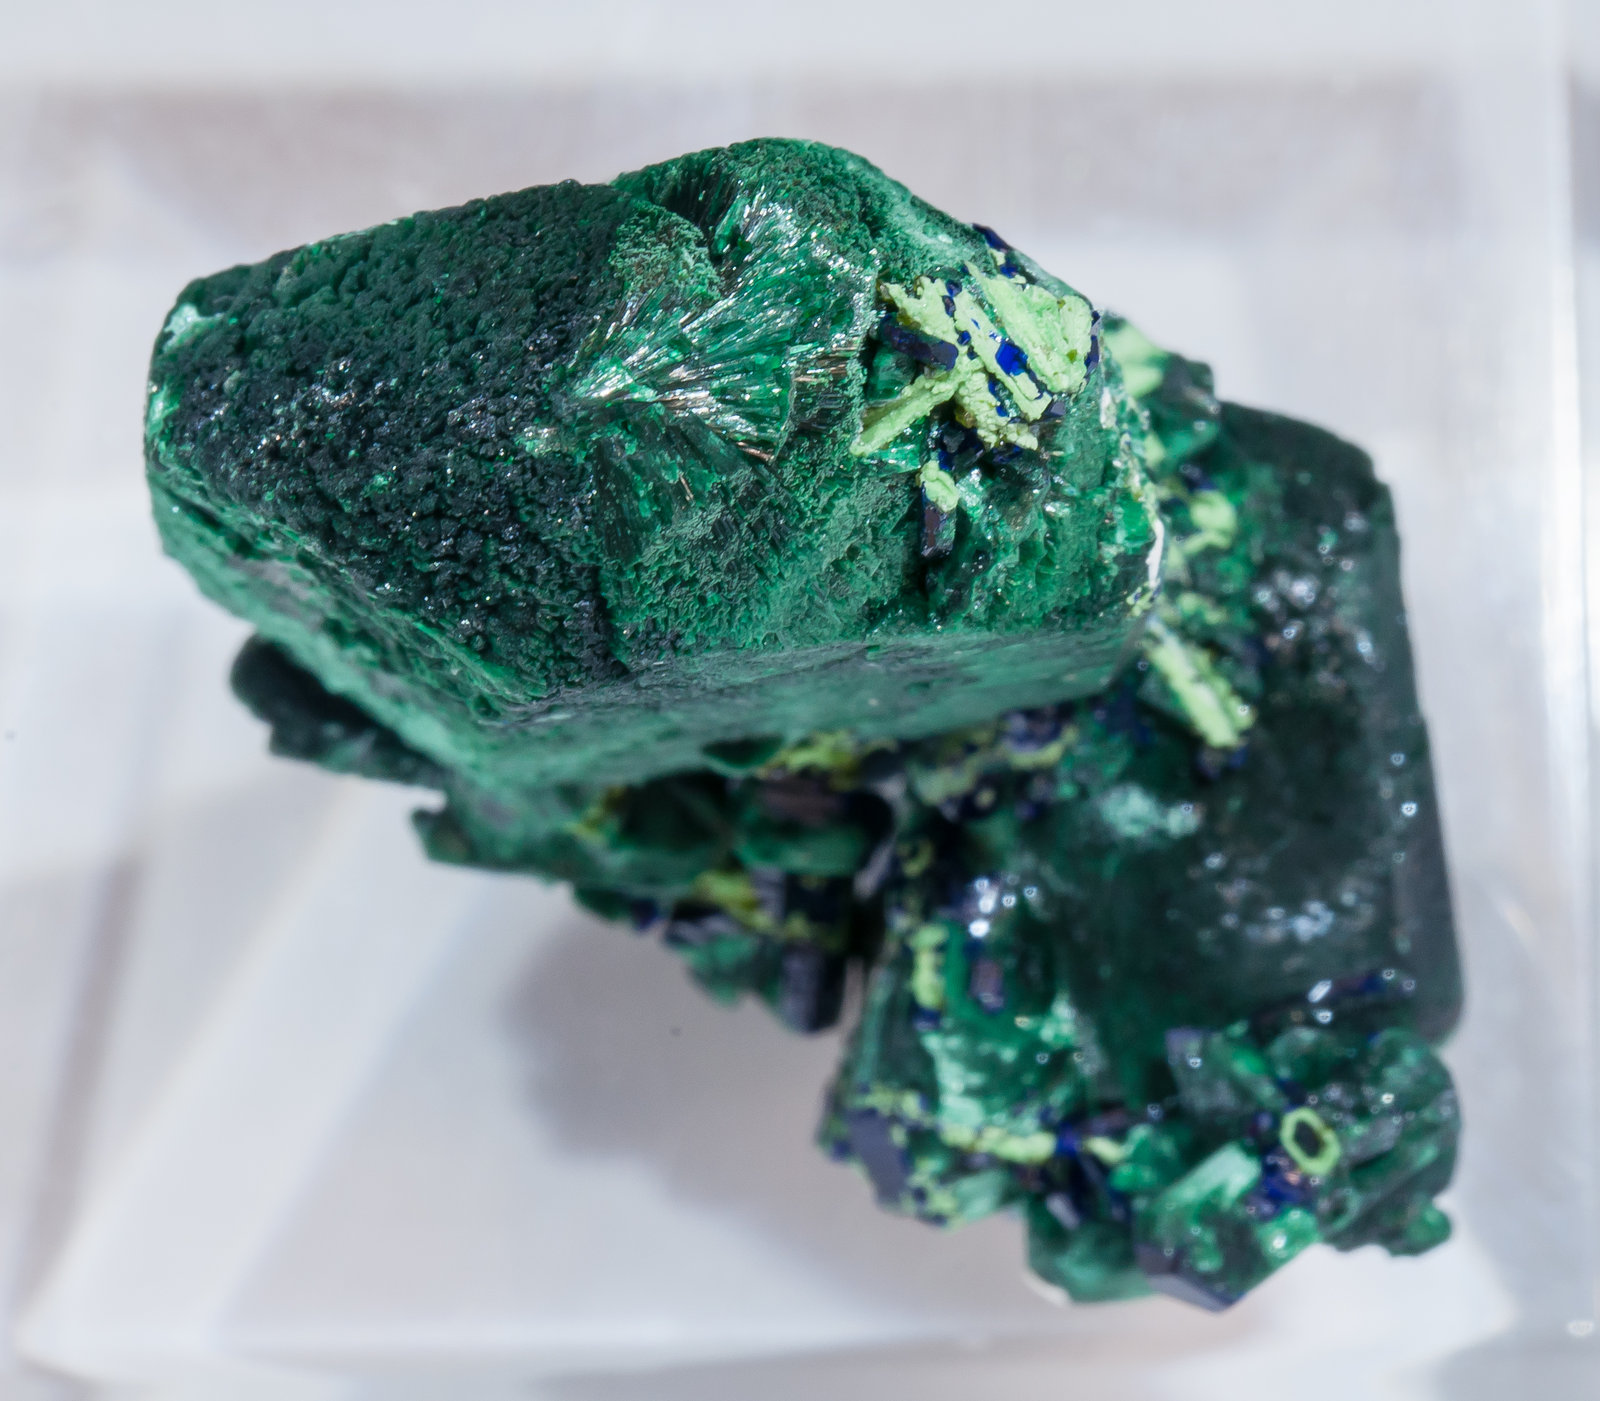 specimens/s_imagesAM5/Malachite-CC27AM5t.jpg